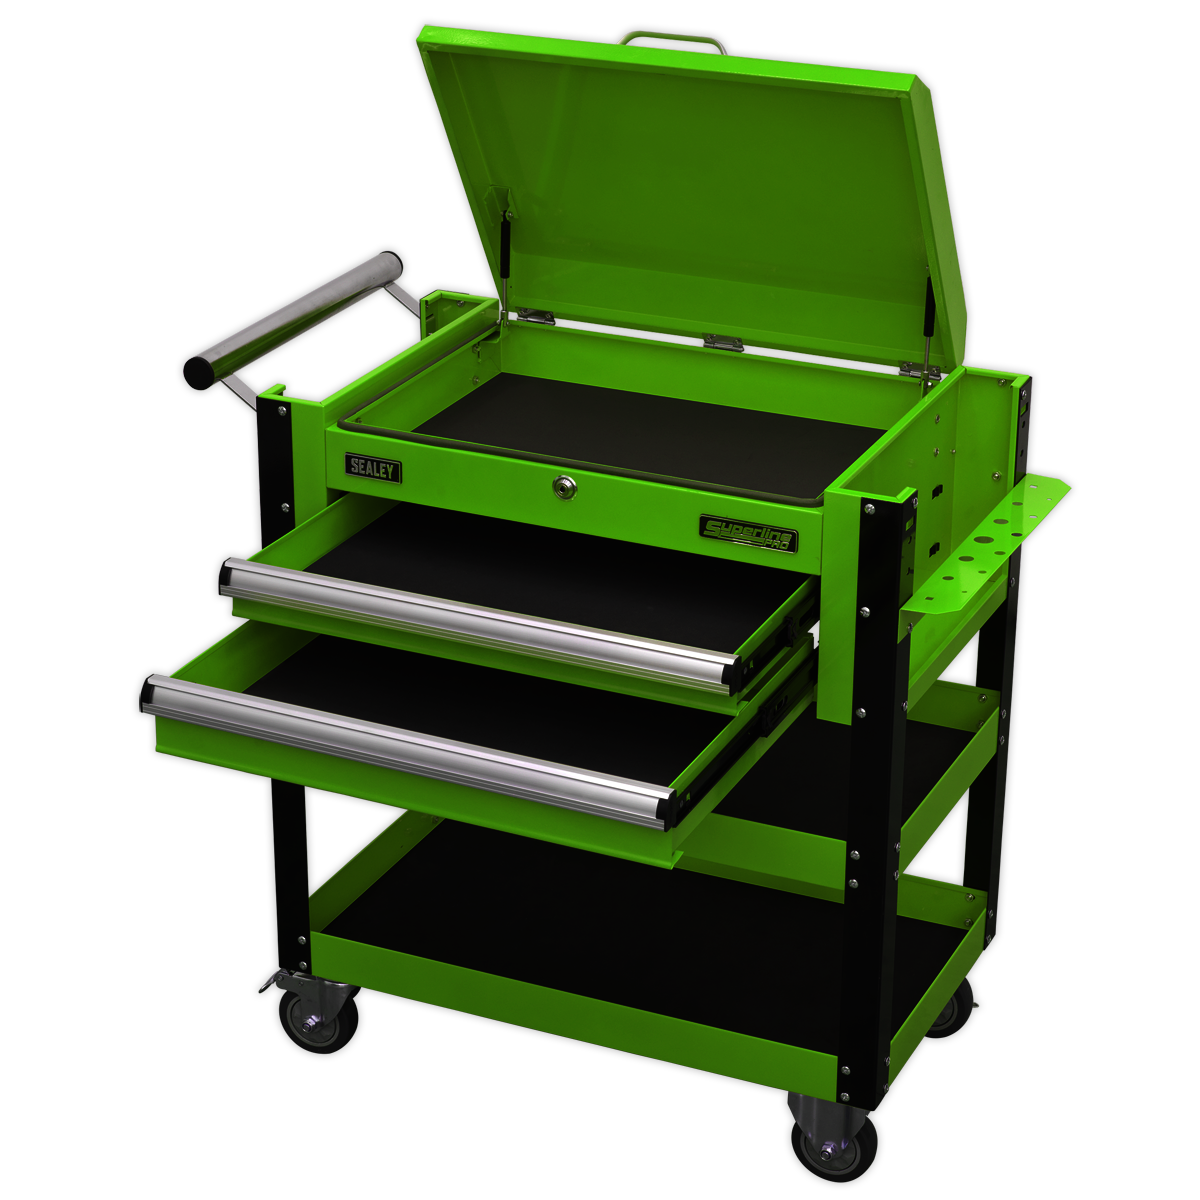 Green Sealey Heavy-Duty Mobile Tool Parts Trolley 2 Drawers /& Lockable Top